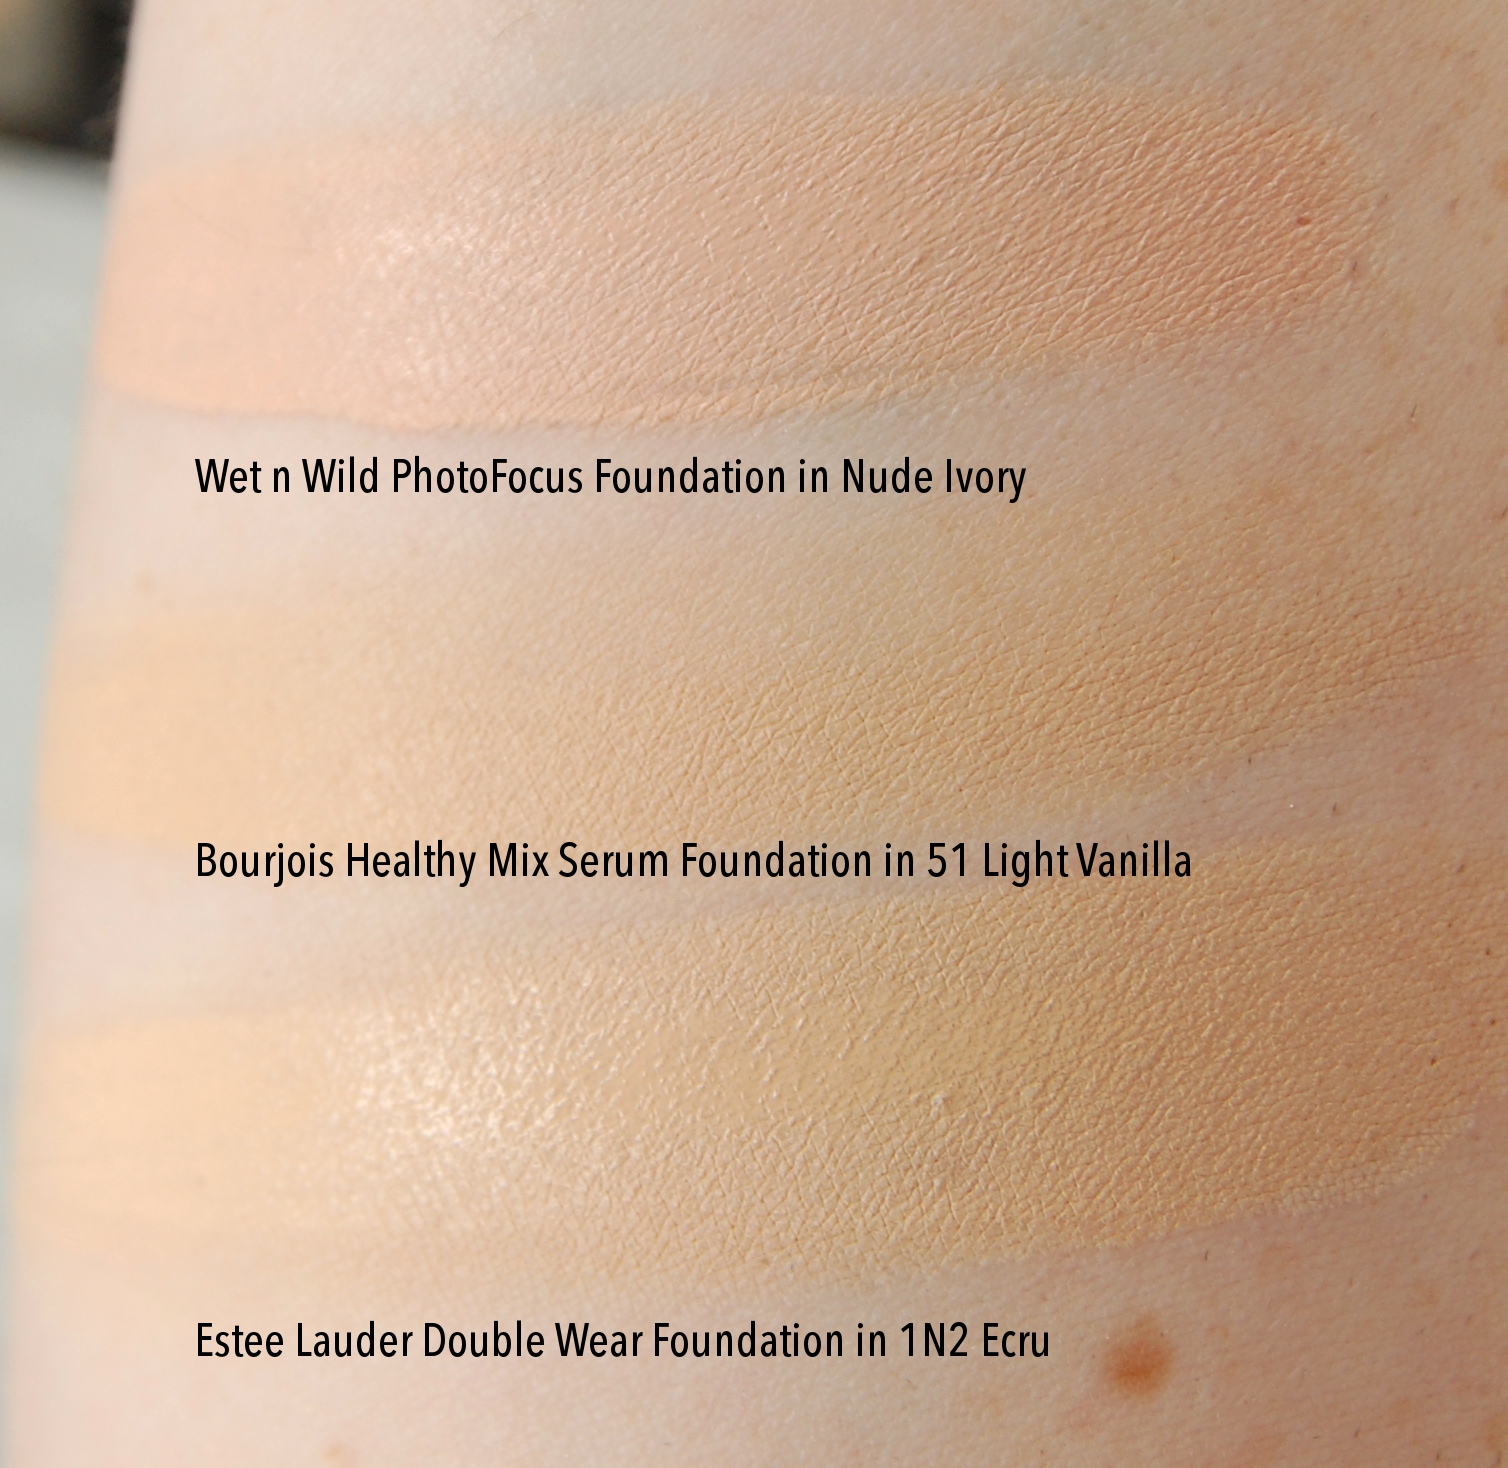 Wet n Wild Photofocus Foundation Nude Ivory swatch comparison Estee Lauder Doublewear Bourjois